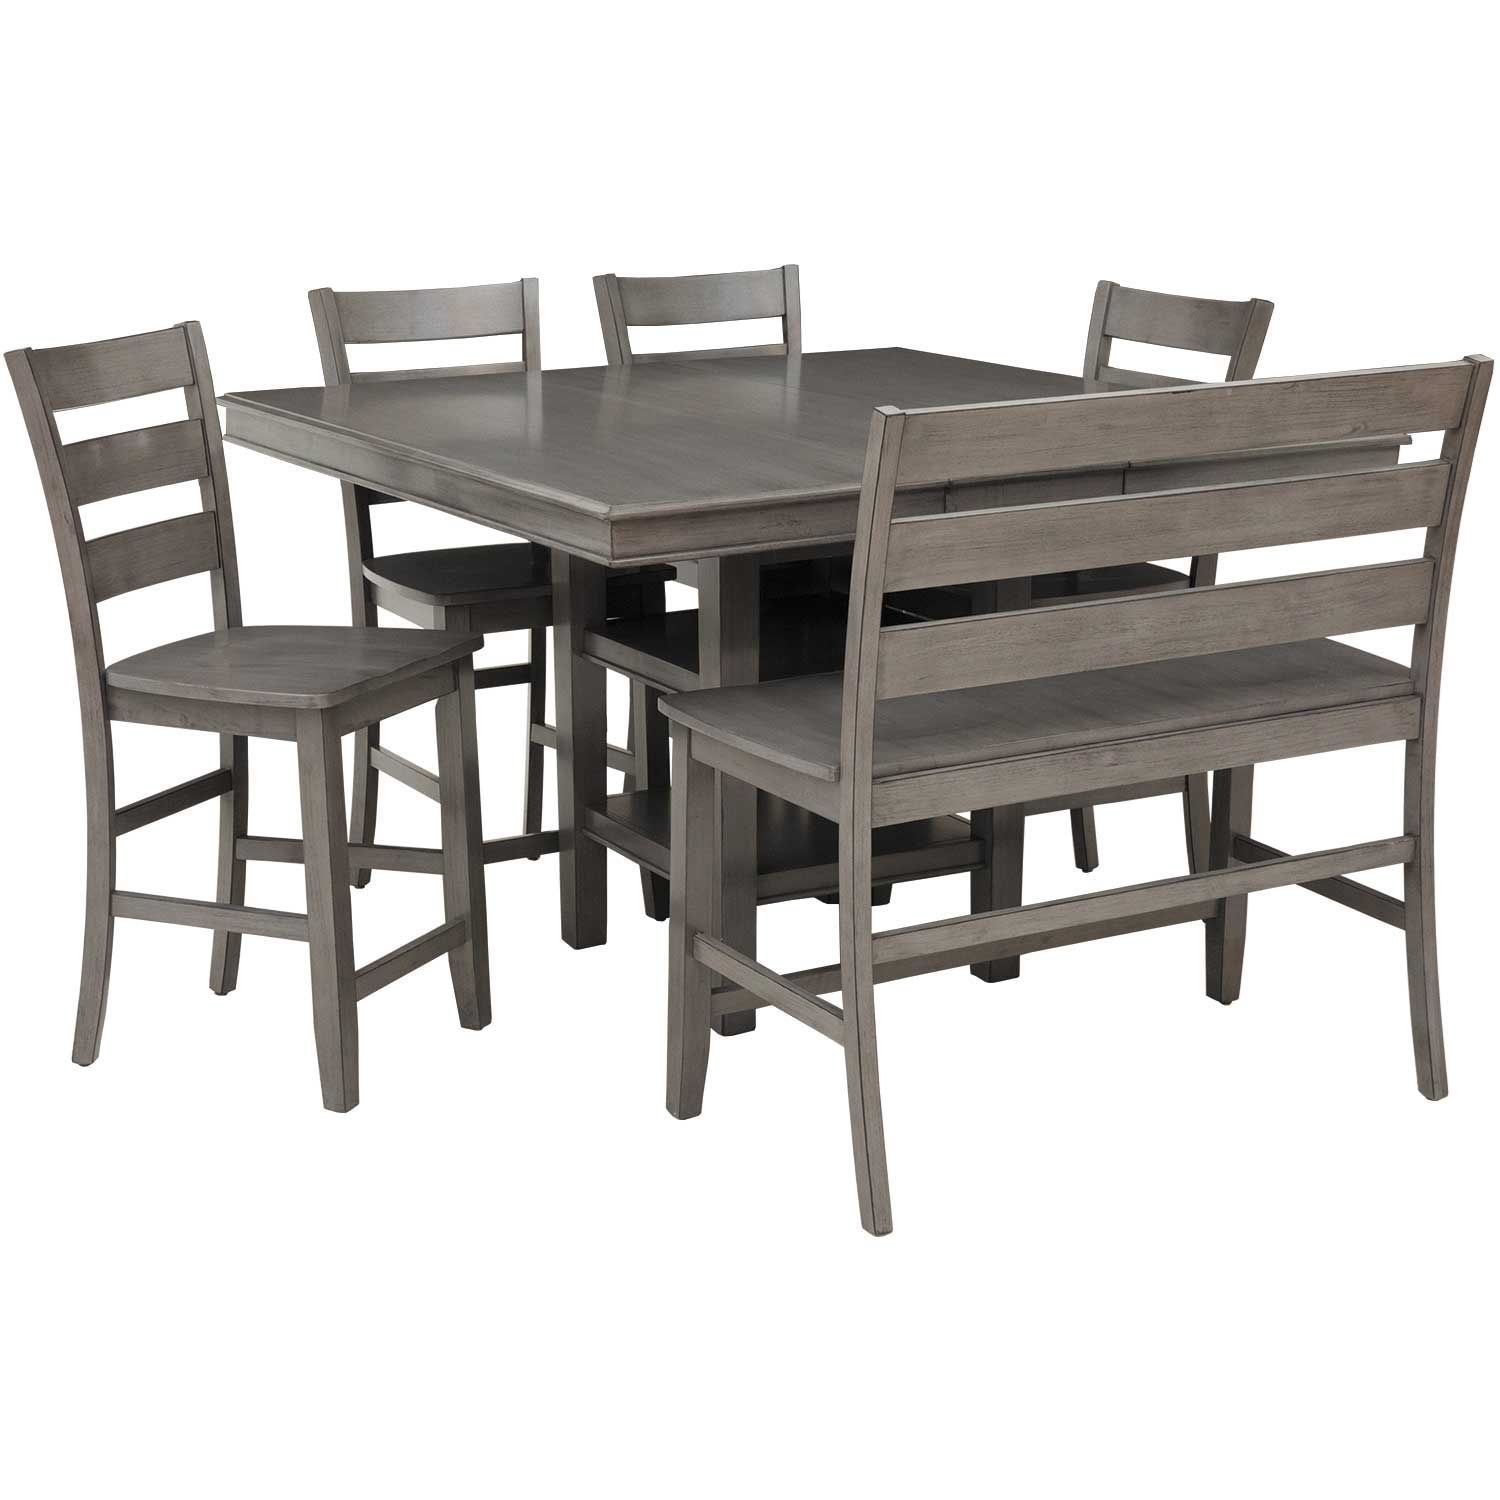 Earl Grey 6 Piece Counter Height Dining Set Lifestyle Furniture C1651 Ptxpp2 Afw Com